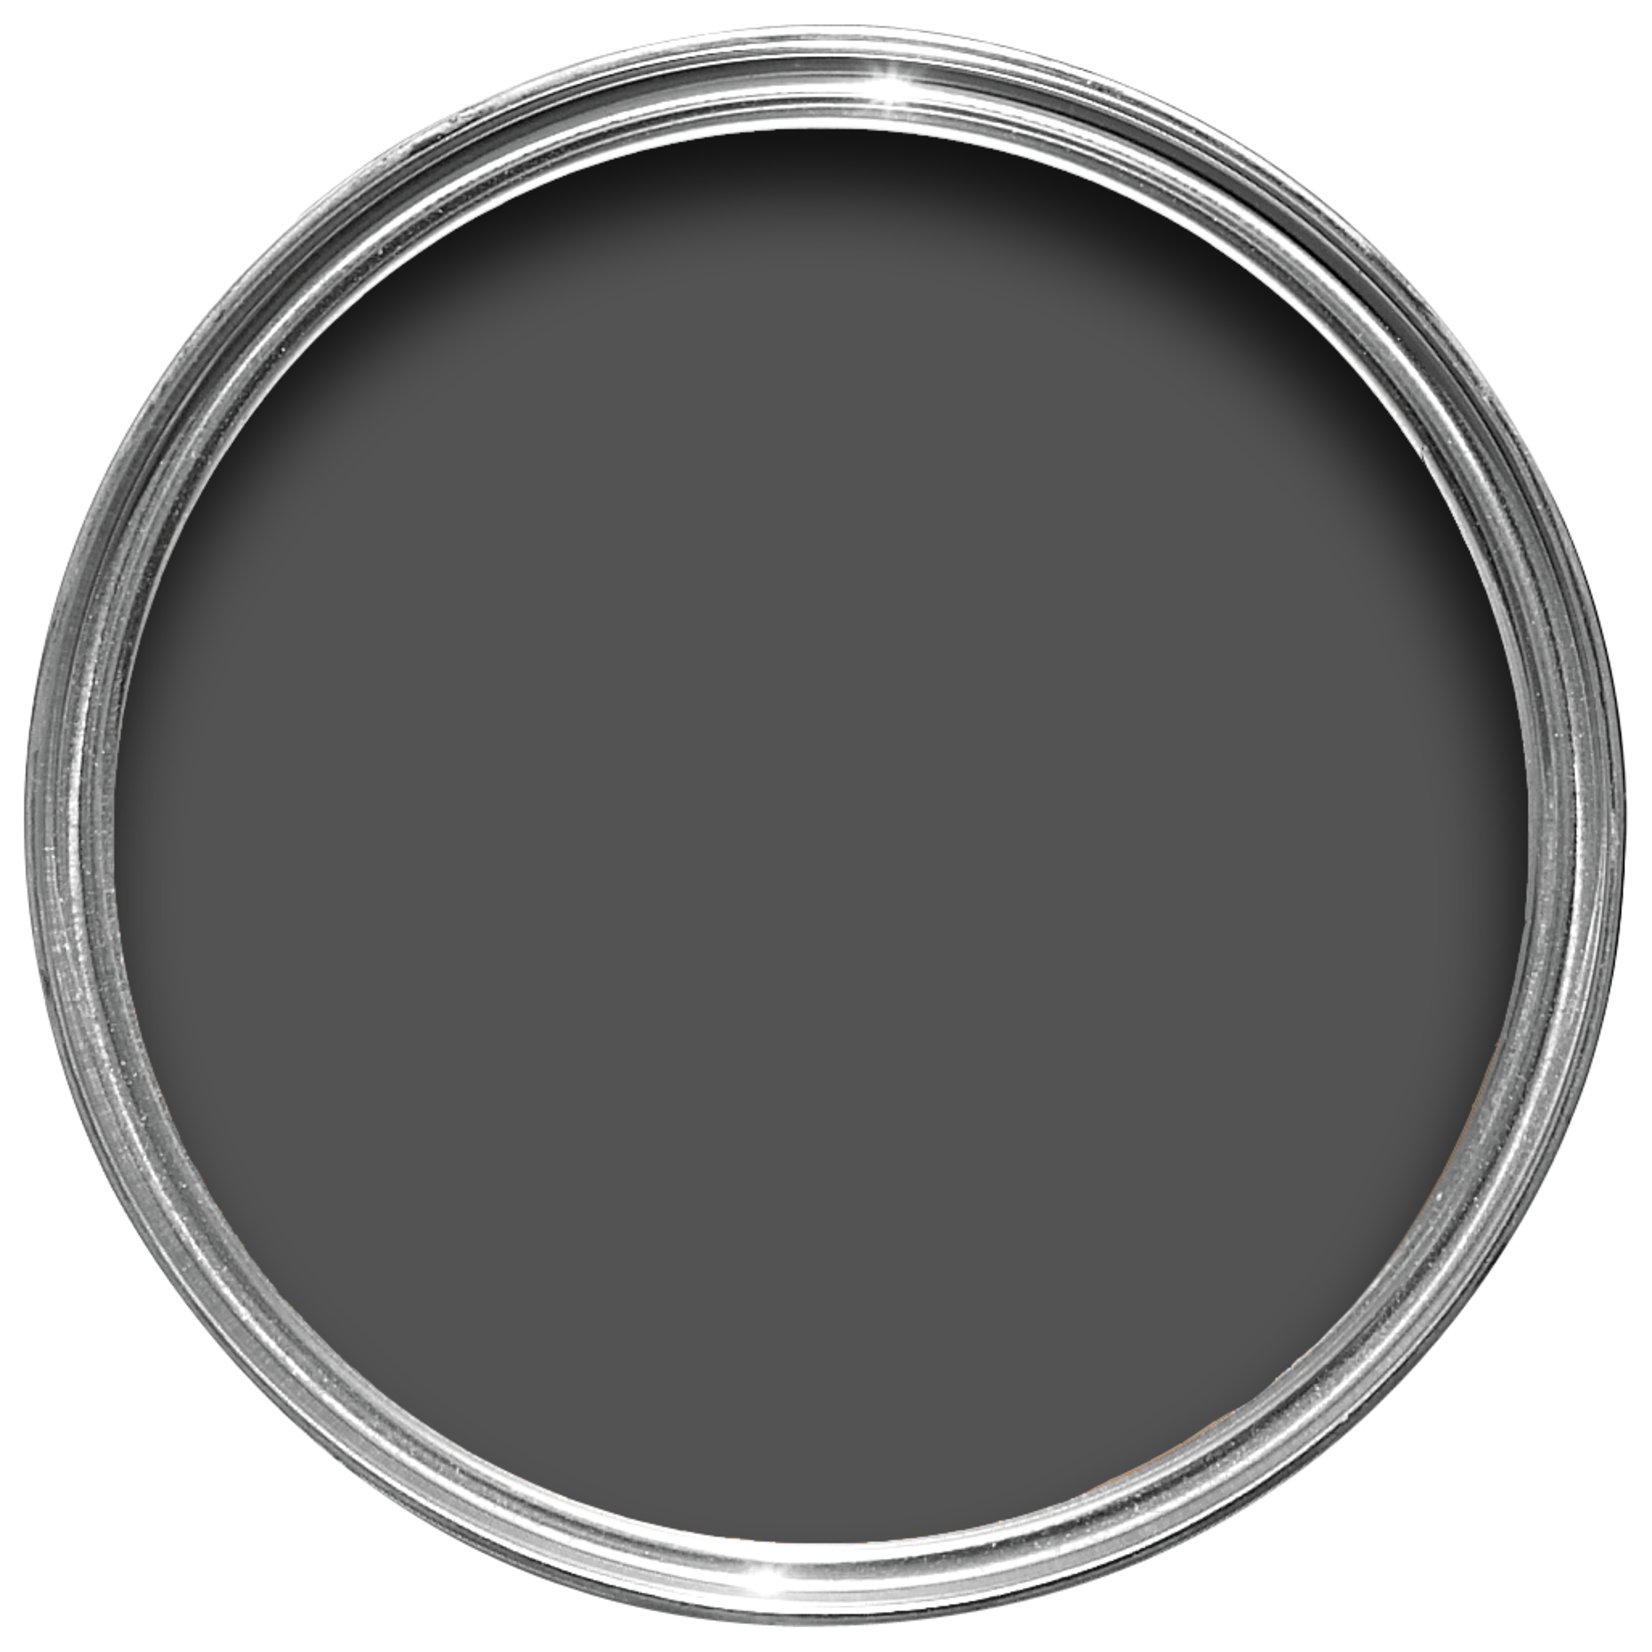 FARROW & BALL THE CALIFORNIA COLLECTION: TAR - No. CC1